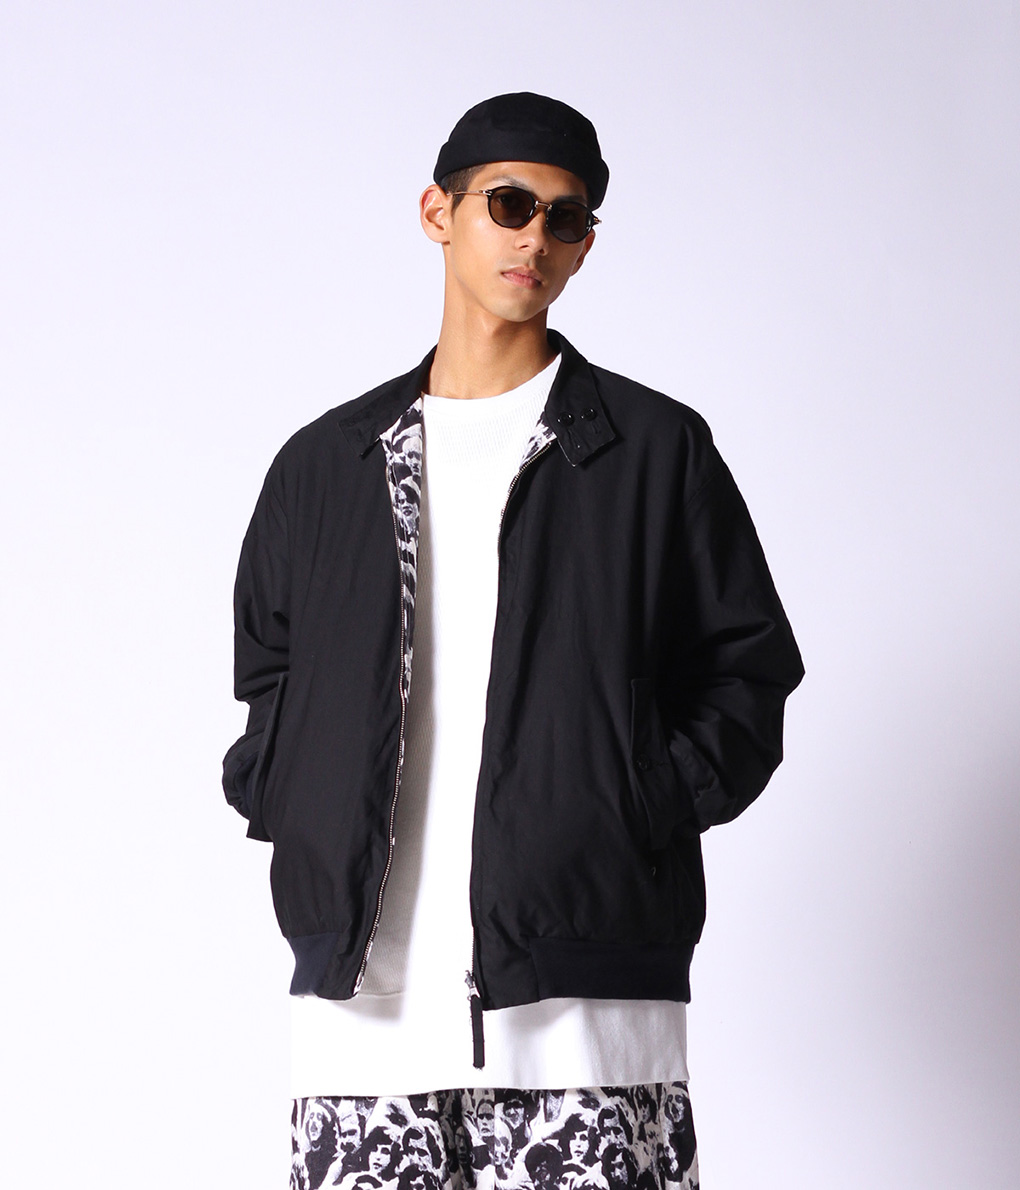 GOLD 東洋エンタープライズ / ゴールド : COTTON WEATHER REVERSIBLE SPORTS JACKET